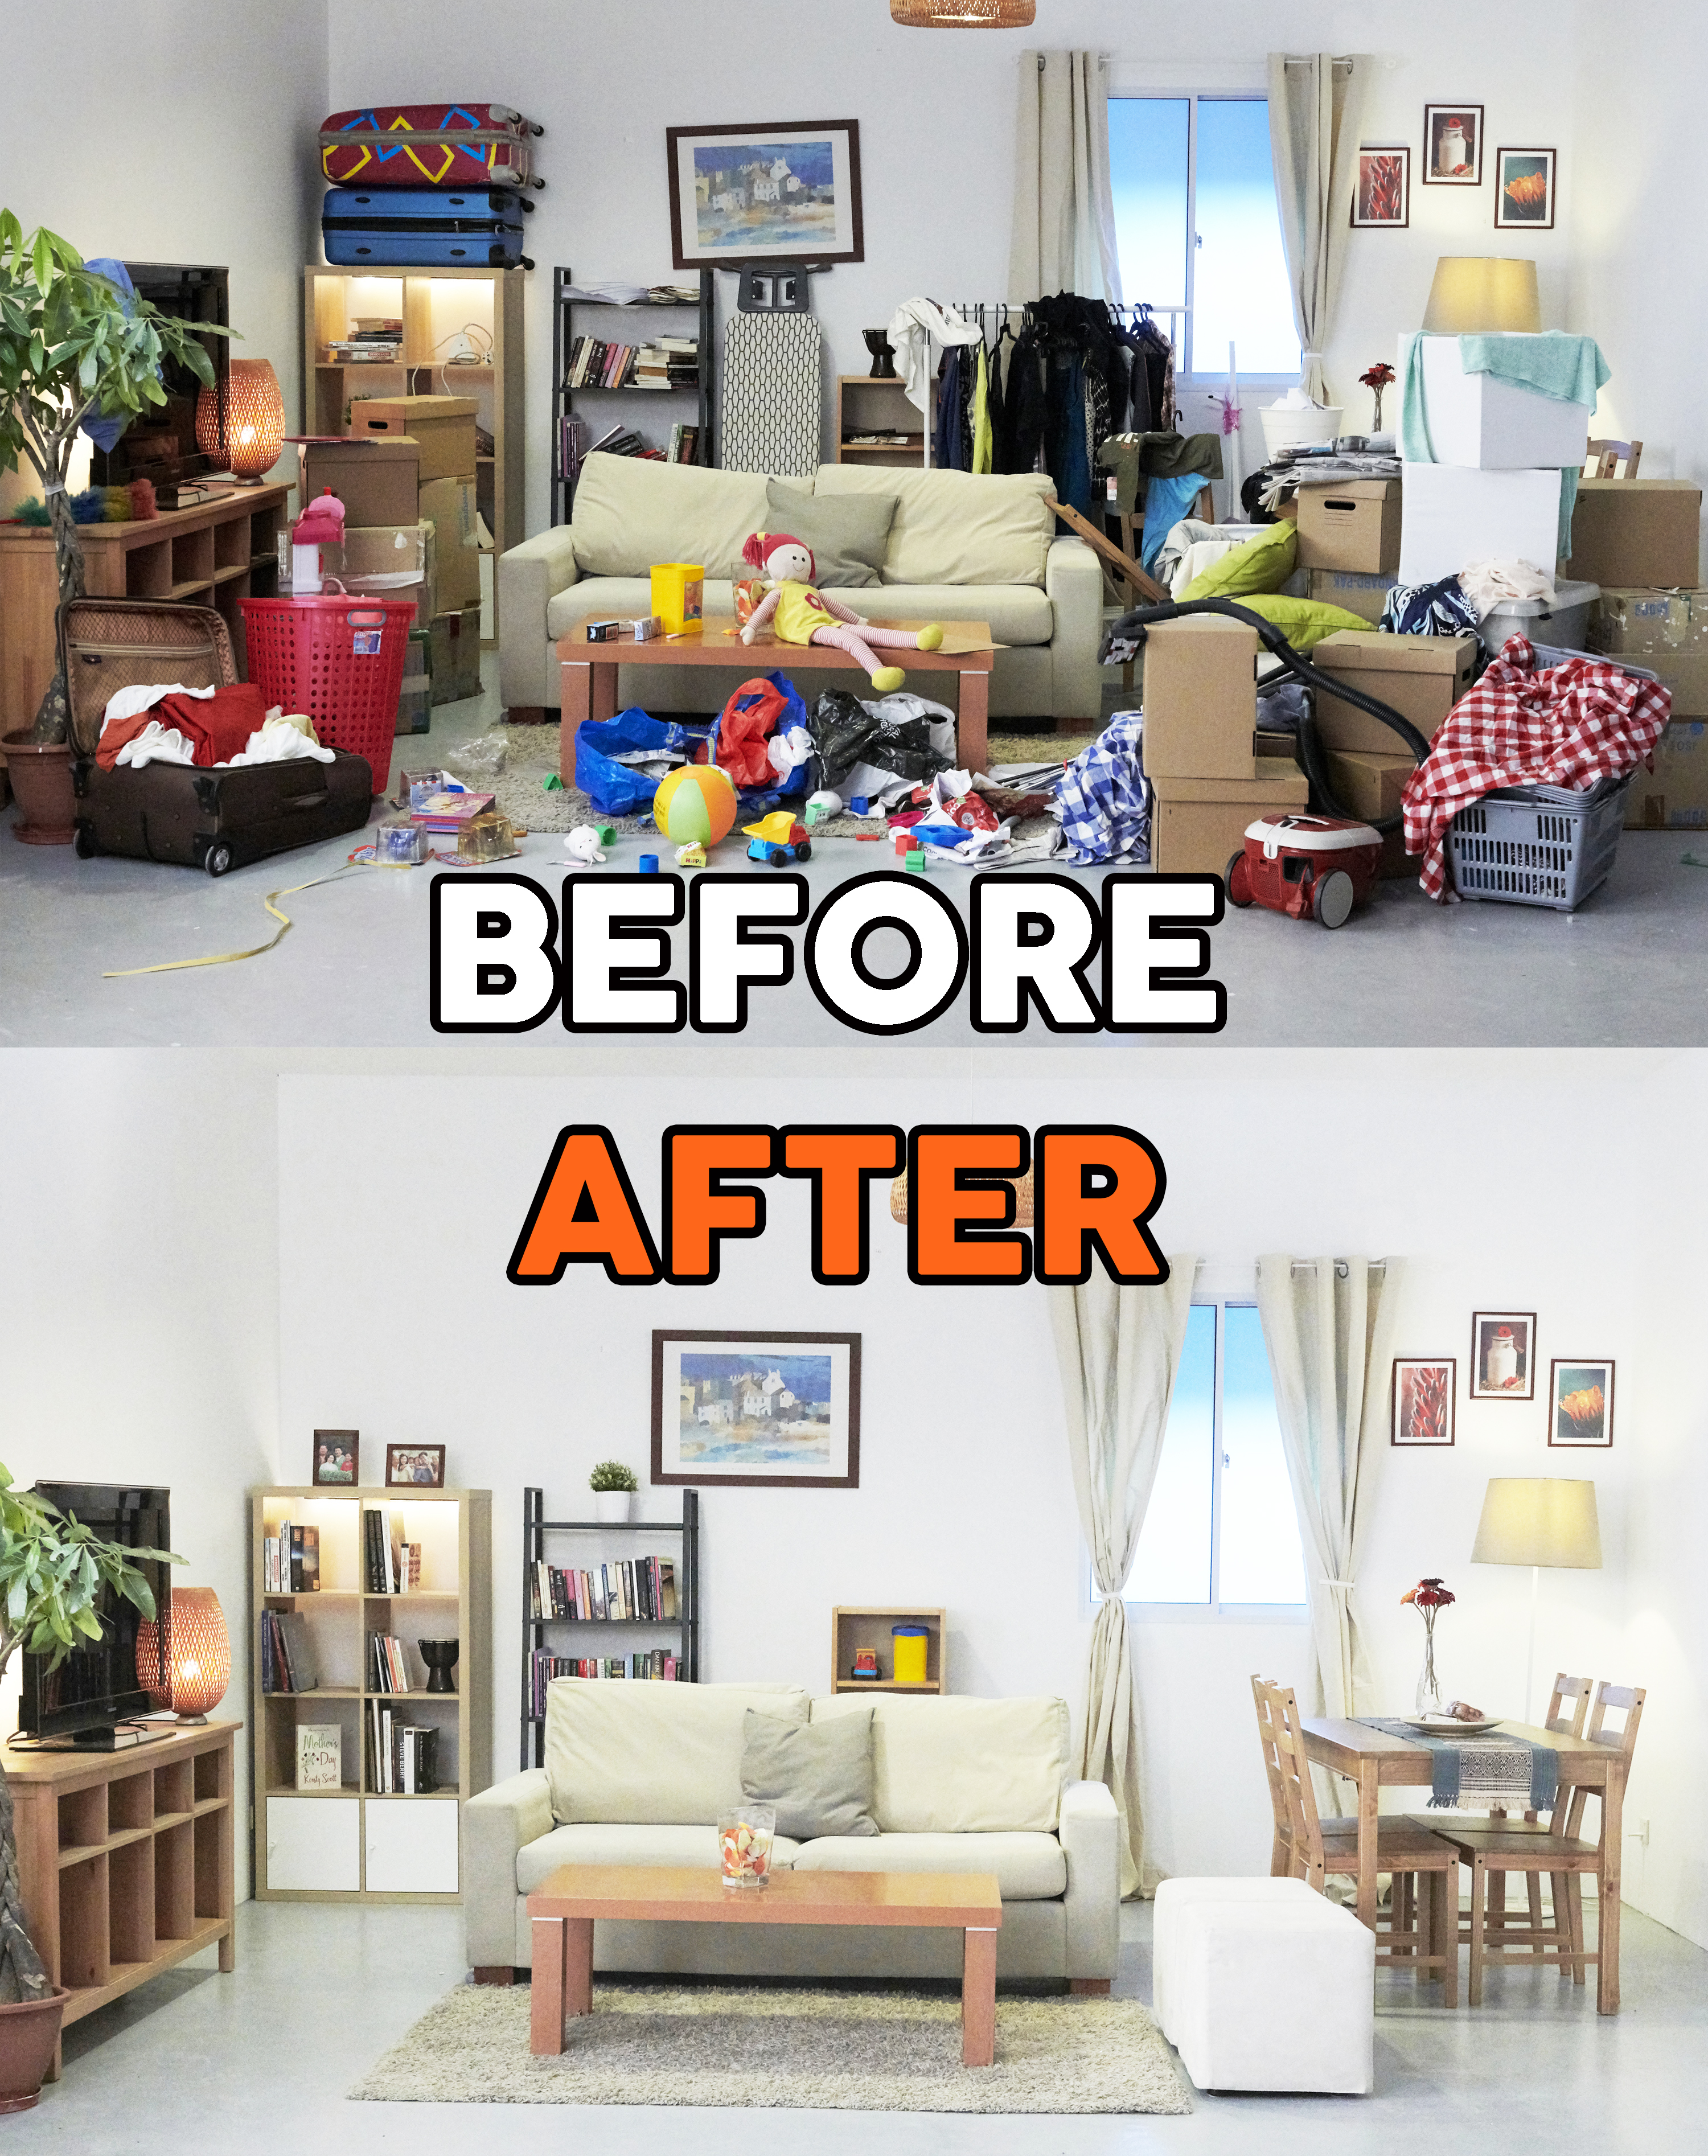 Before and after image of a house that used storage units for keeping their old baby items to tidy their home.